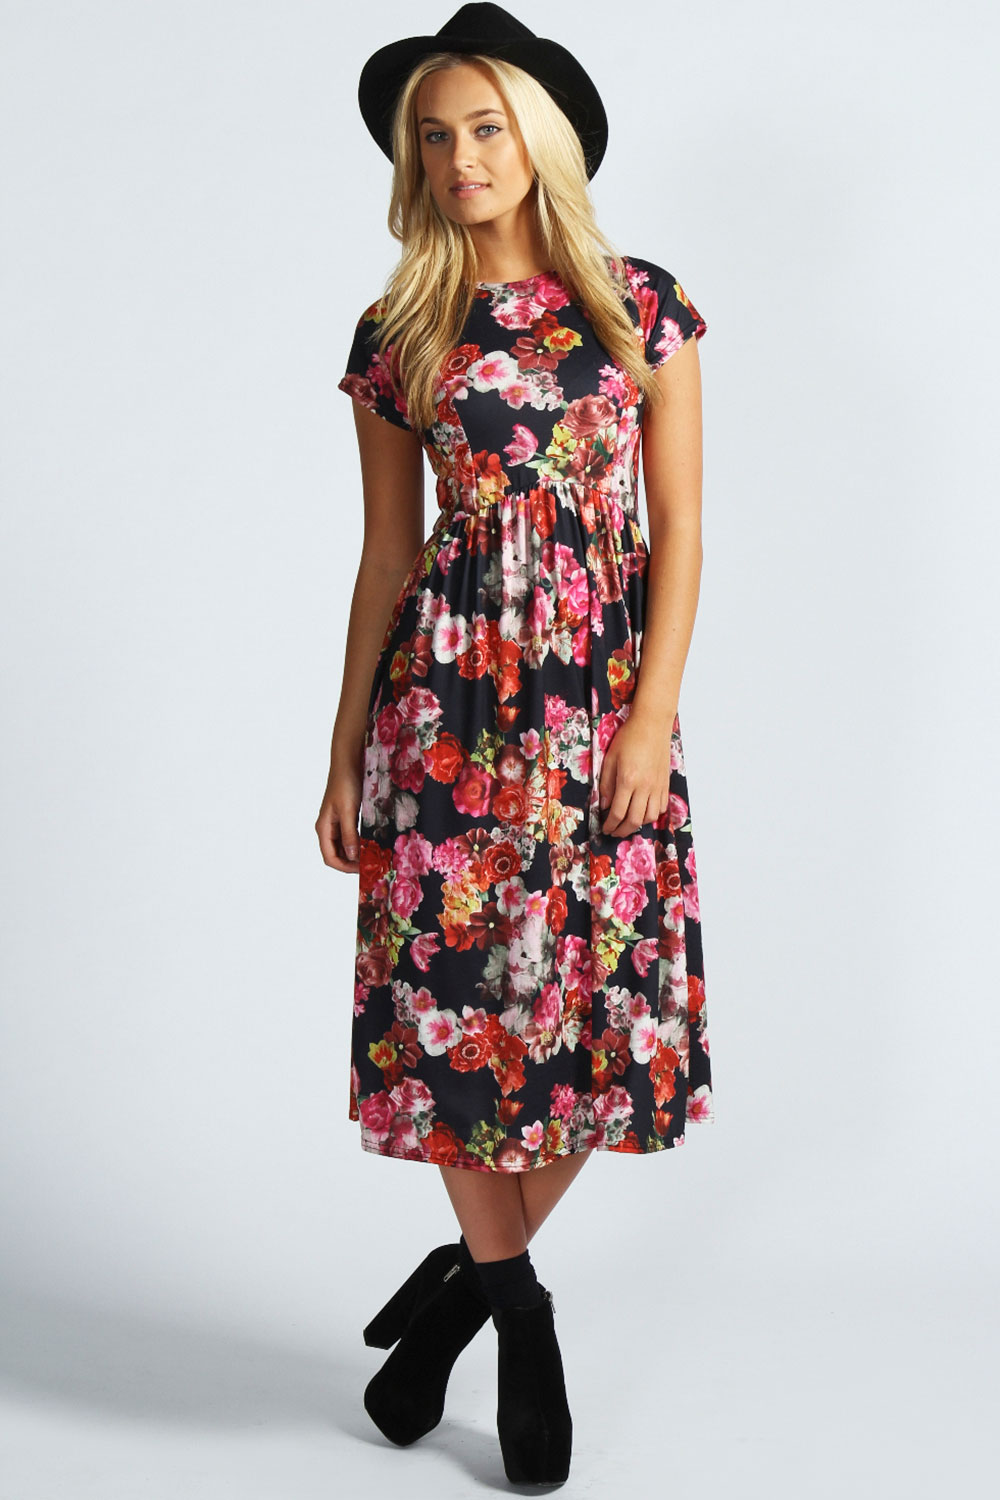 Find and save ideas about Skater dress outfits on Pinterest. | See more ideas about Skater style dress, Casual skater dress and Yellow spring dresses. Women's fashion. Skater dress outfits Floral skater dress This black and floral skater dress is super cute. Easy to dress up or down and can go with anything for any season.